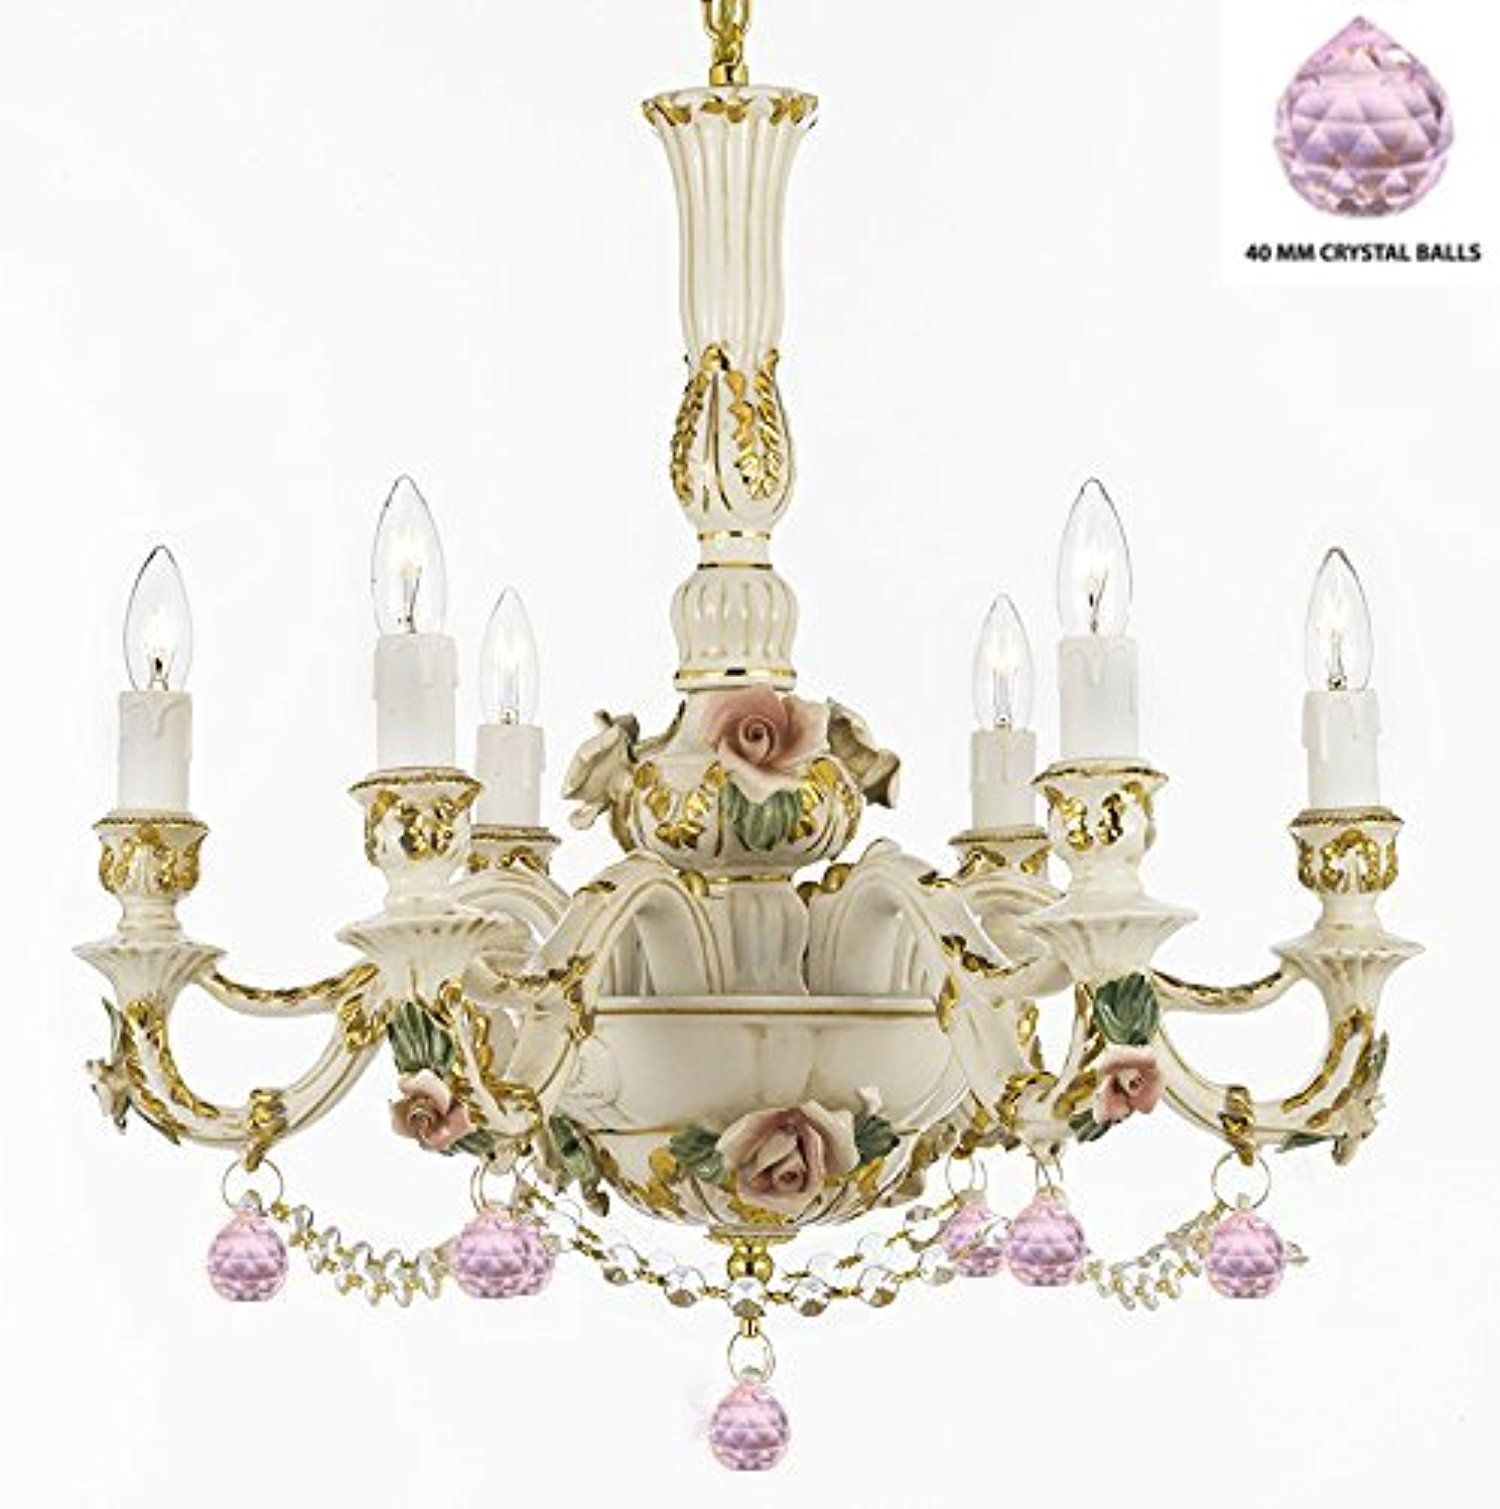 Authentic Capodimonte Porcelain Chandelier Lighting Chandeliers